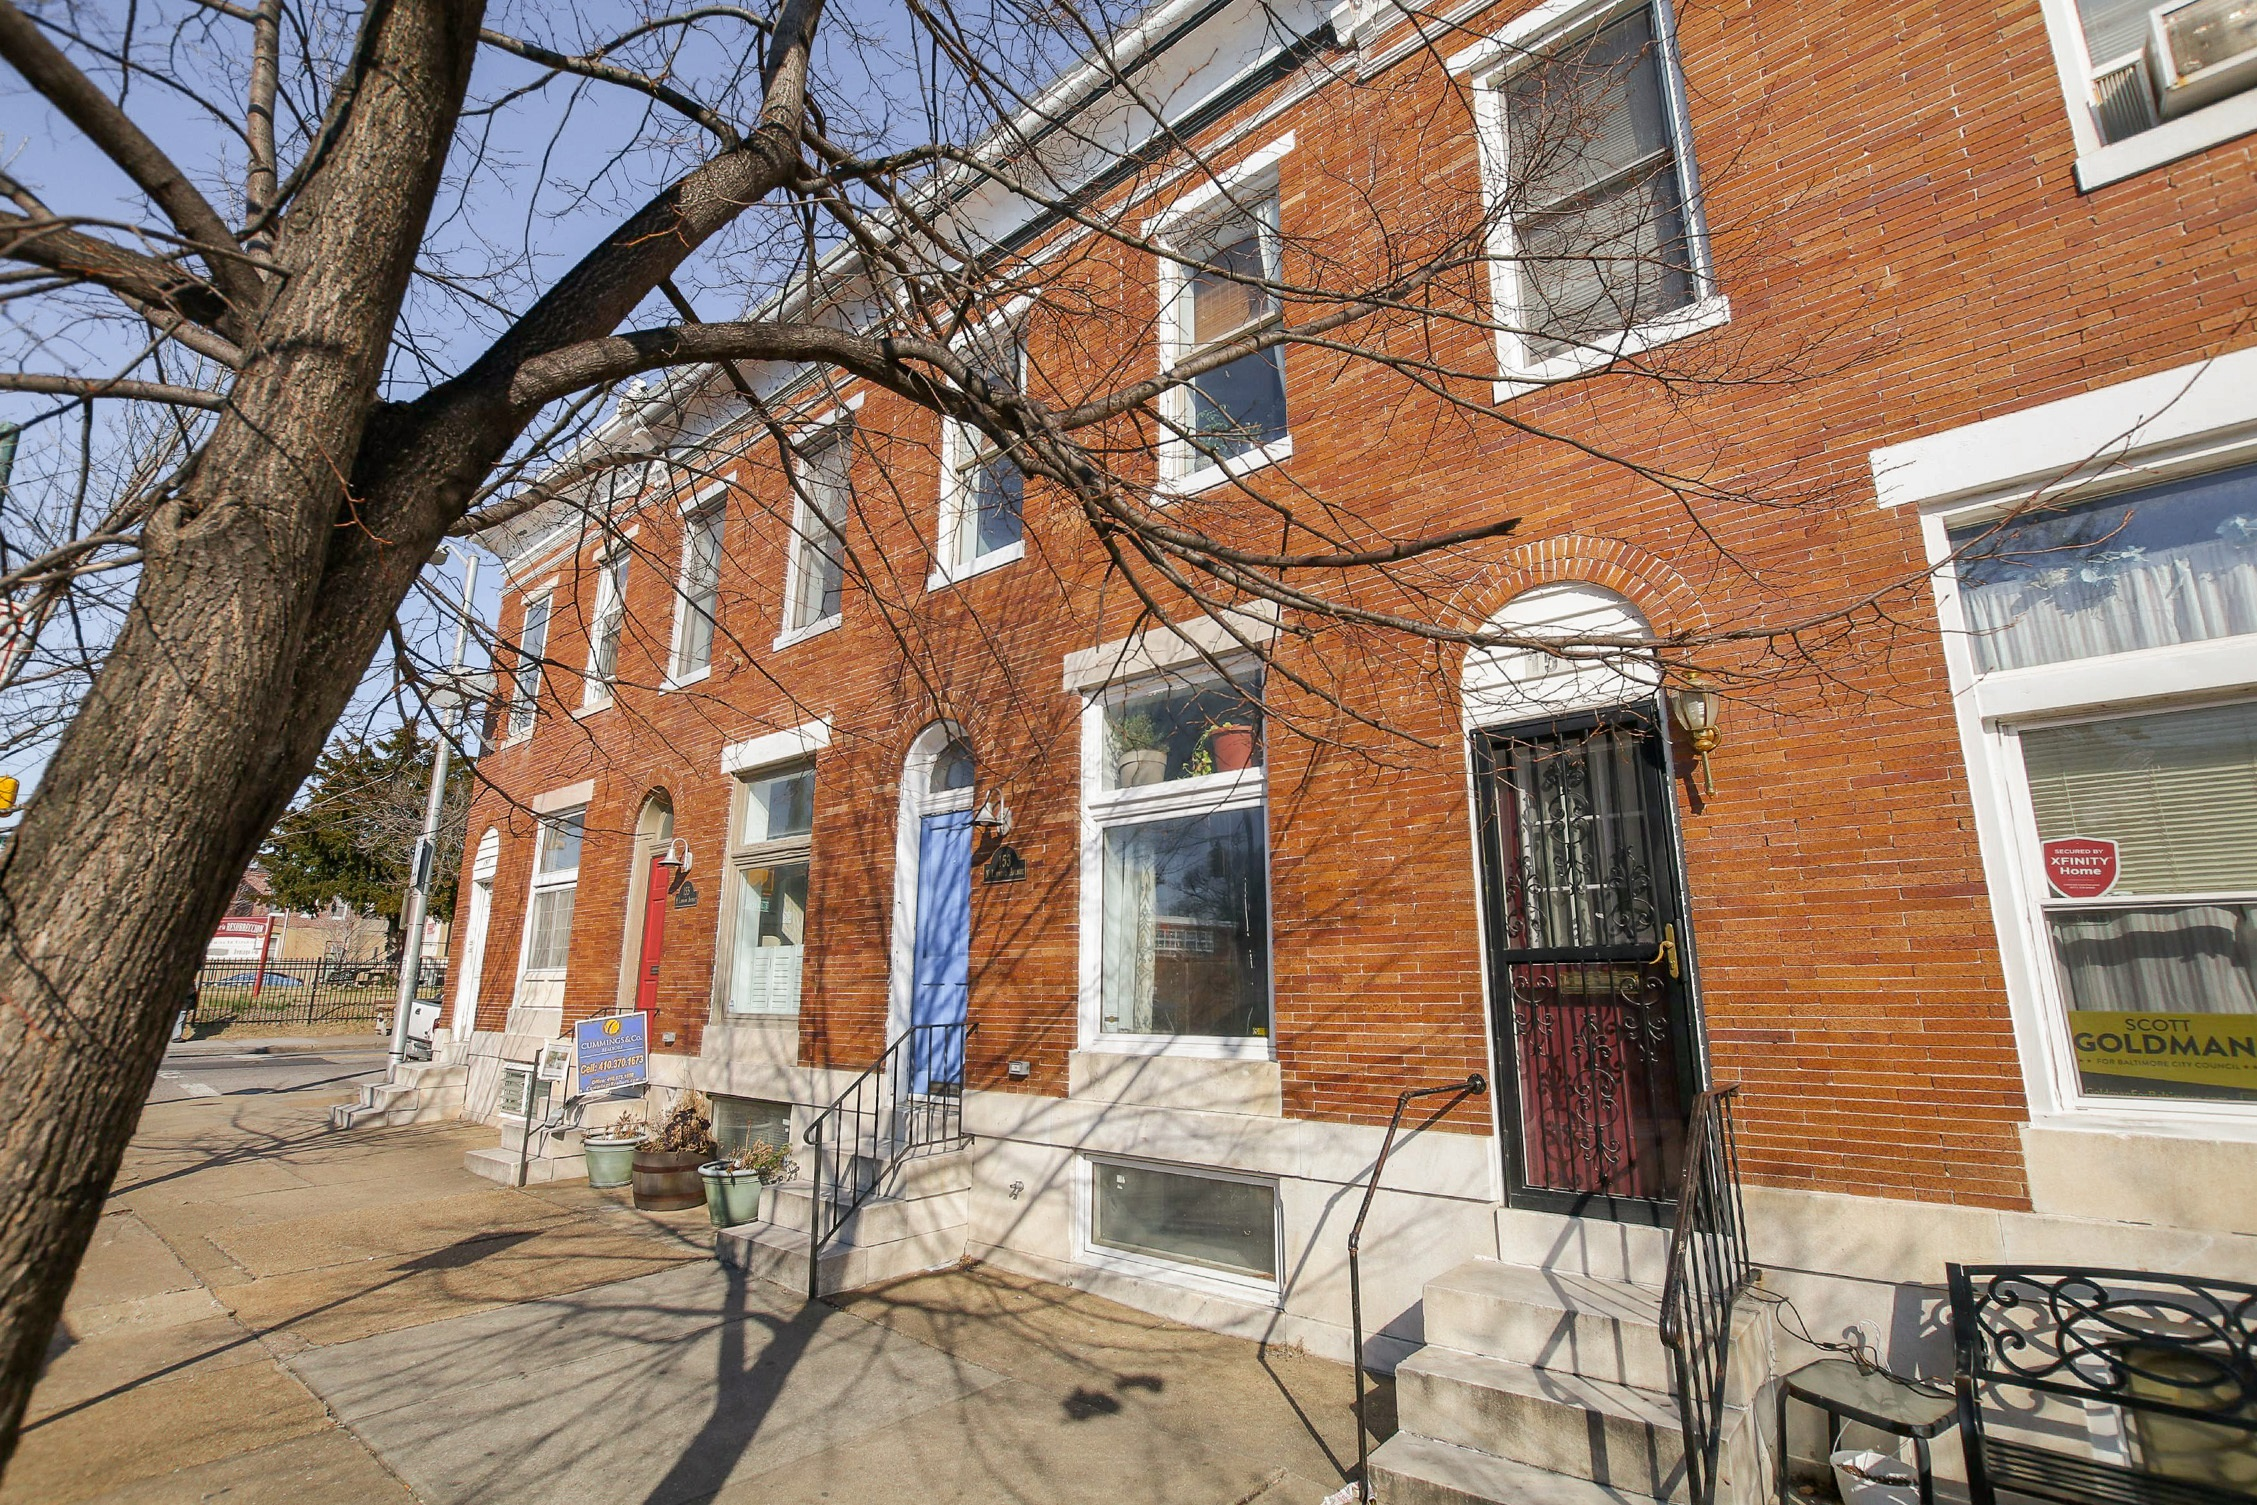 Patterson Park Home for Sale Baltimore 2